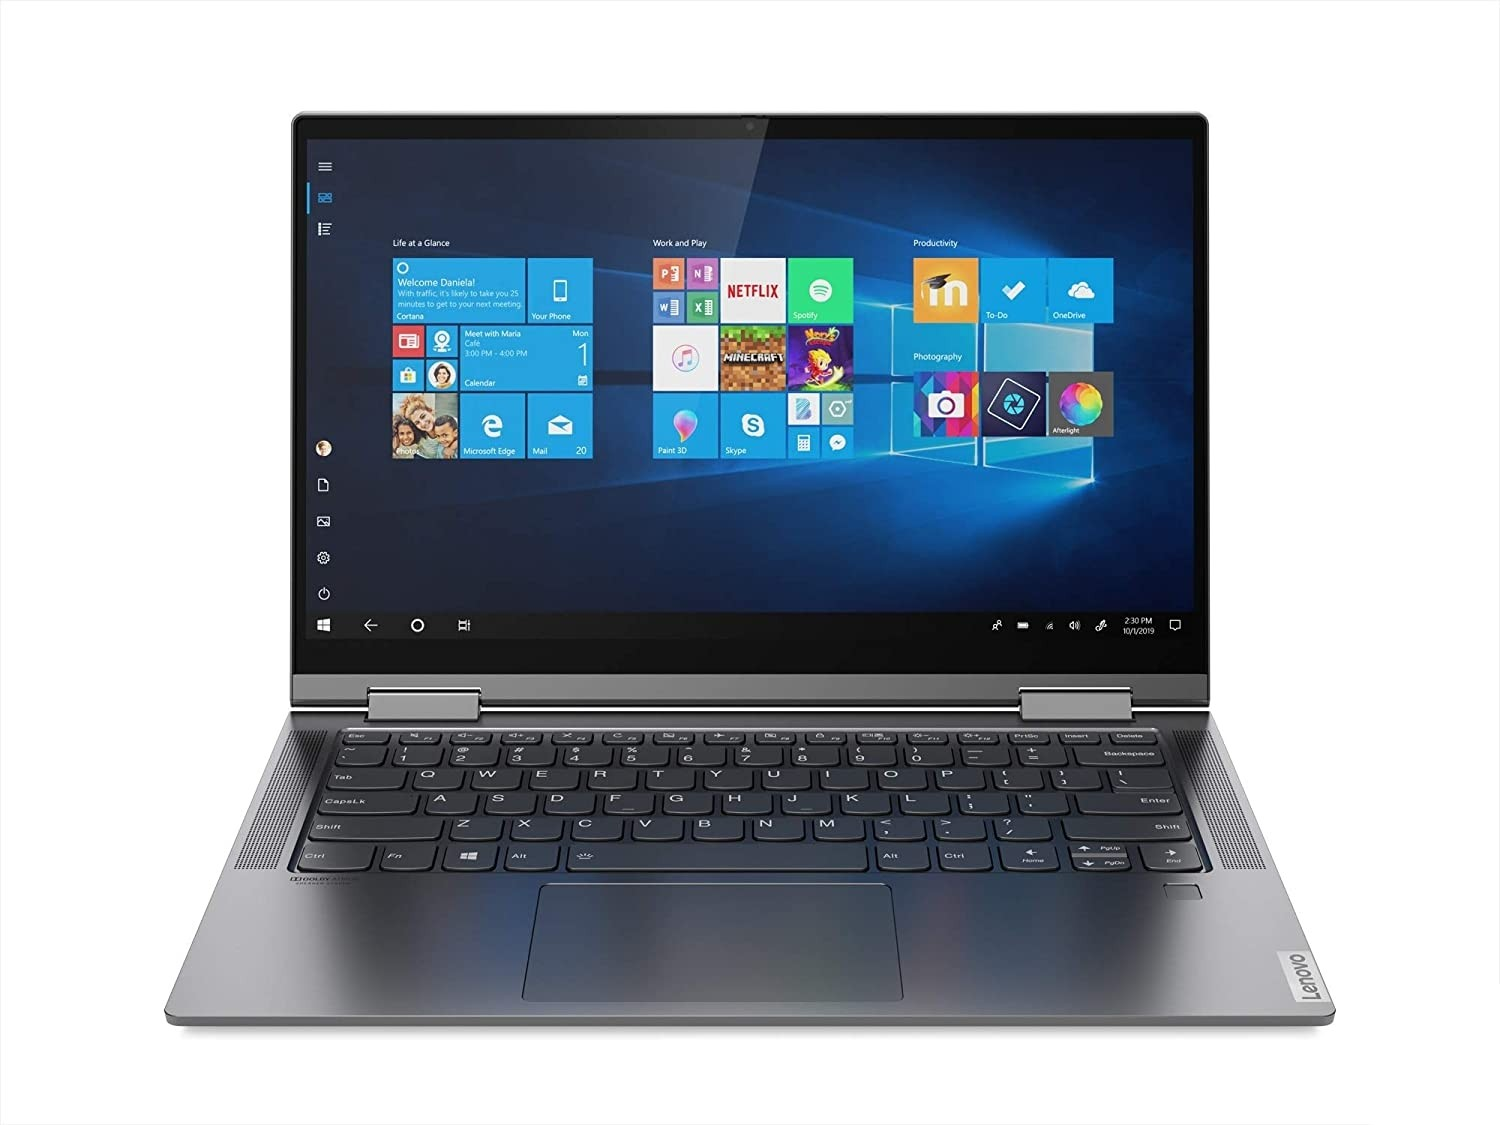 Refurbished laptops & desktops - Lenovo Yoga C740 Intel Core I7 10TH Generation 14 Inch FHD 2 In 1 Convertible Laptop (16GB/512GB SSD/Windows 10/Grey/1.4Kg), 81Tc00B2In